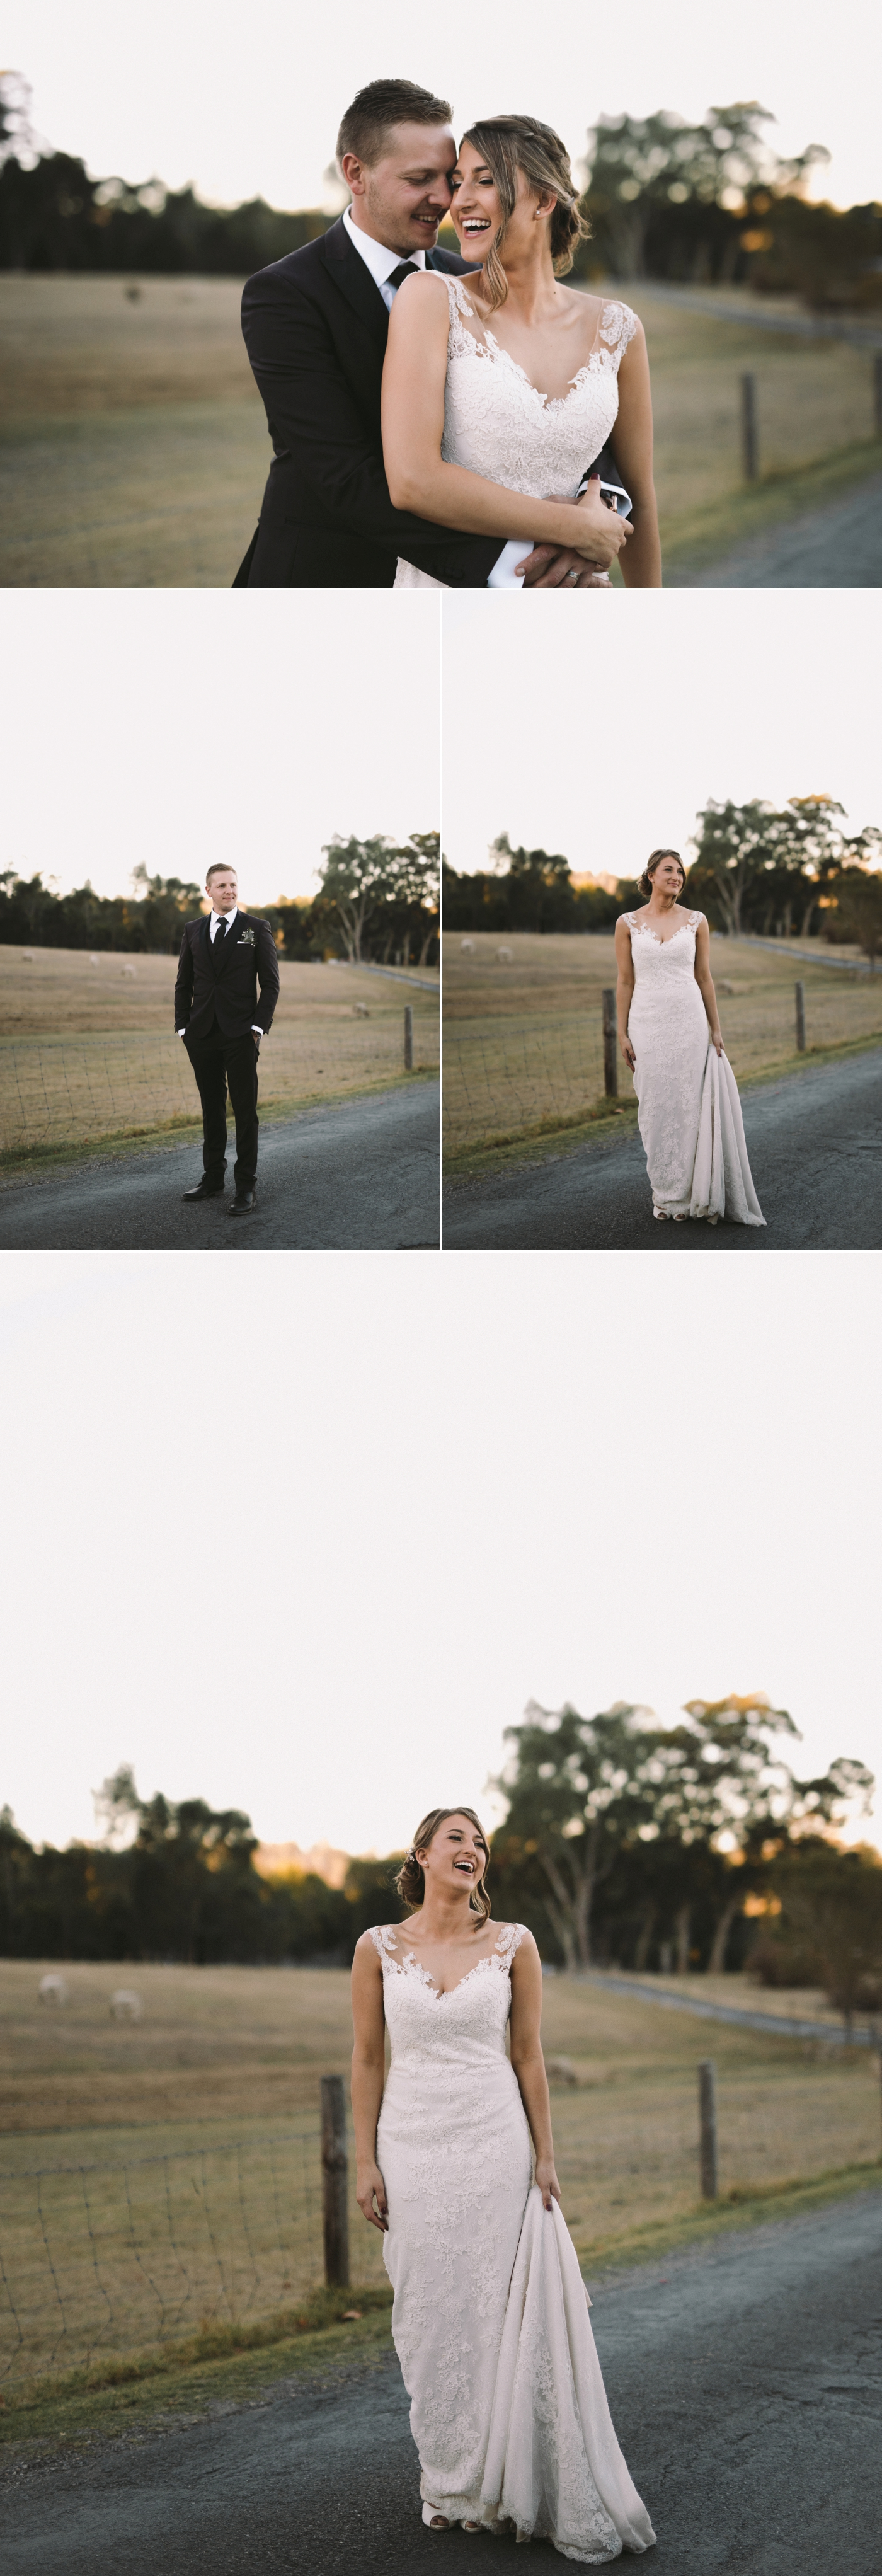 Bec & Mitch - Natural Wedding Photography in Adelaide - Beautiful, candid wedding photographer in Adelaide - Katherine Schultz - www.katherineschultzphotography.com_0051.jpg